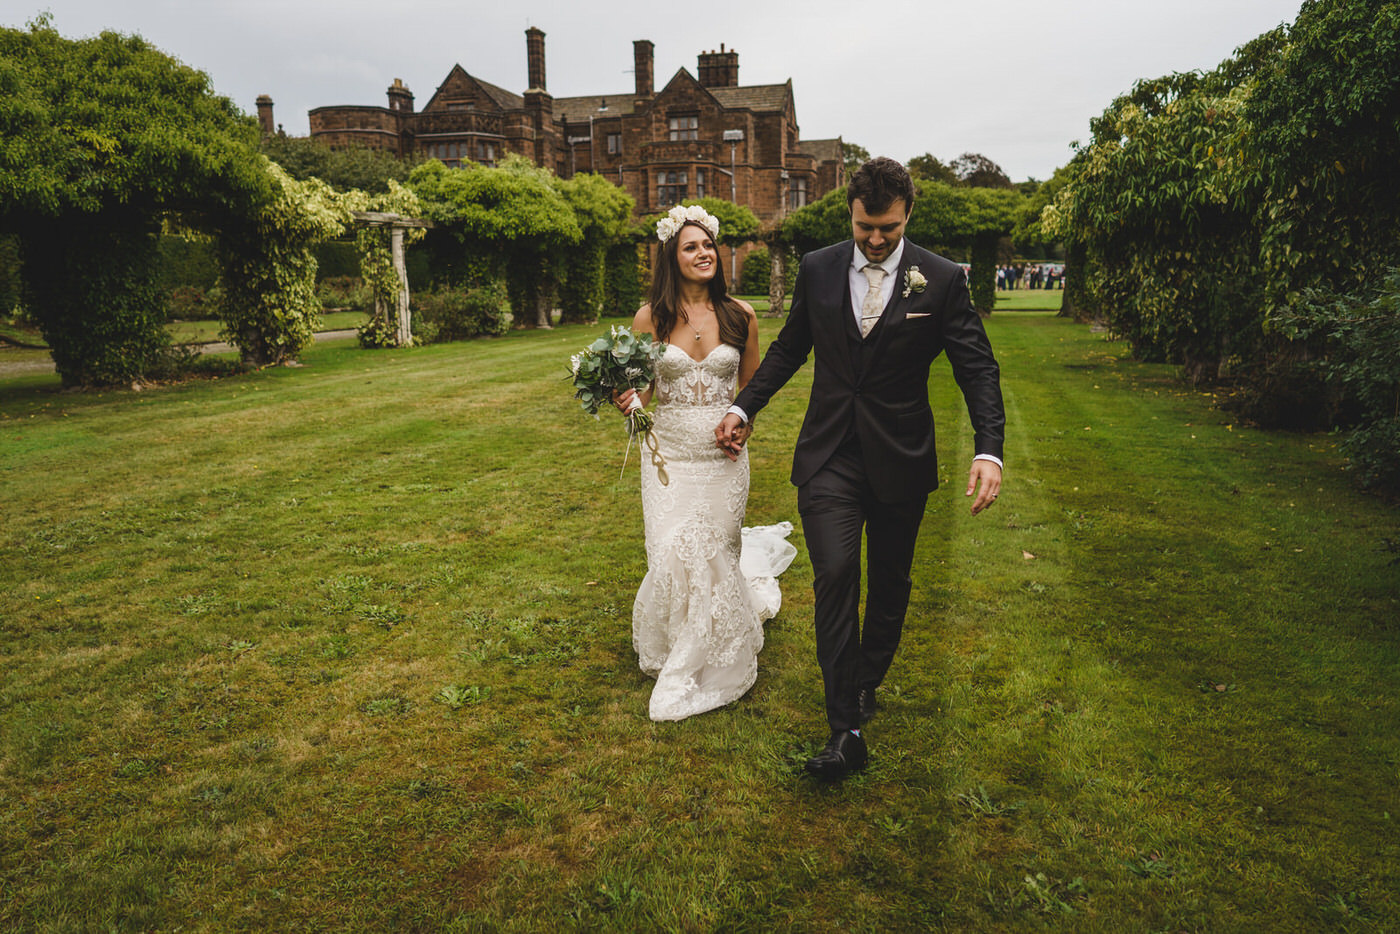 the bride smiles broadly at her groom as they walk among the trees at Thornton Manor